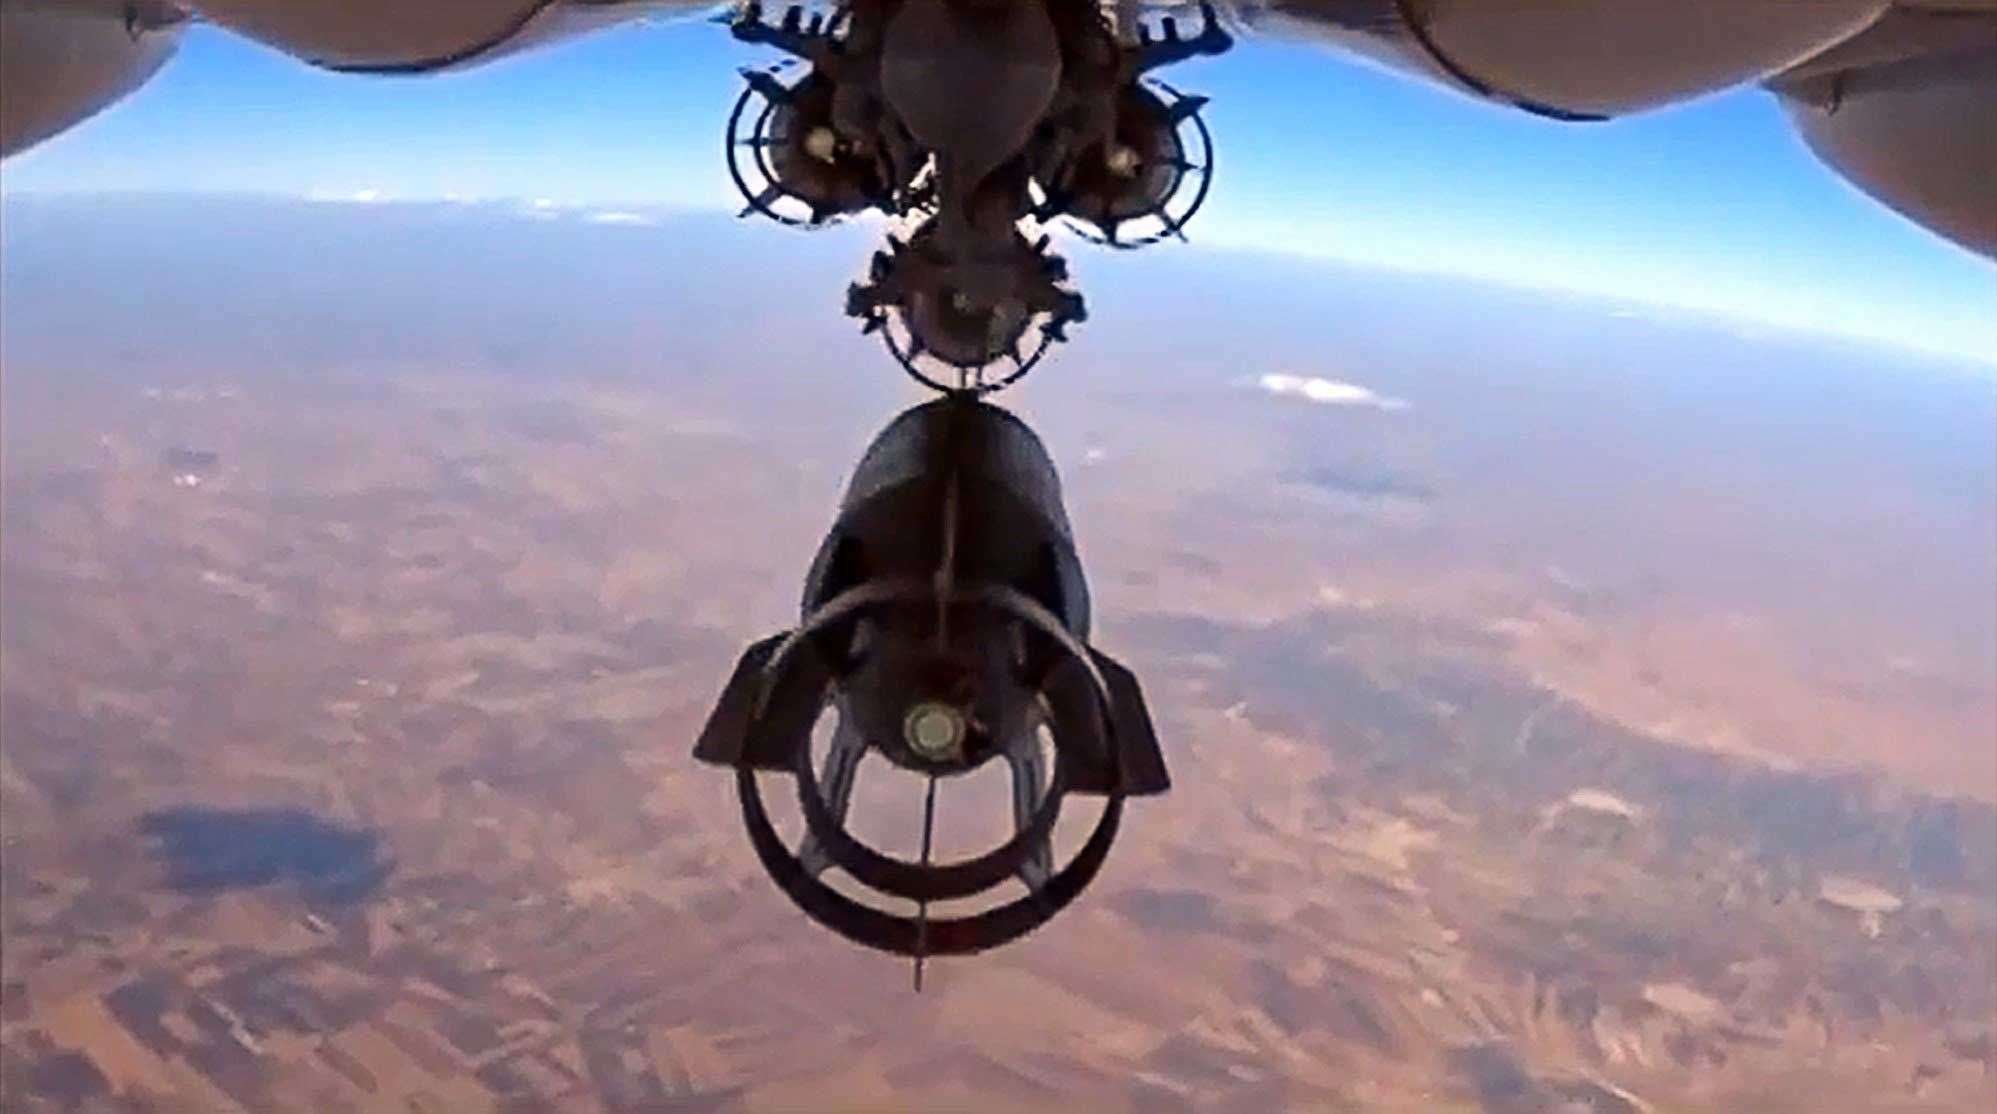 A video grab made on Oct. 6, 2015, shows an image taken from footage made available on the Russian Defense Ministry's official website on Oct. 5, purporting to show a Russia's Su-24M bomber dropping bombs during an airstrike in Syria.